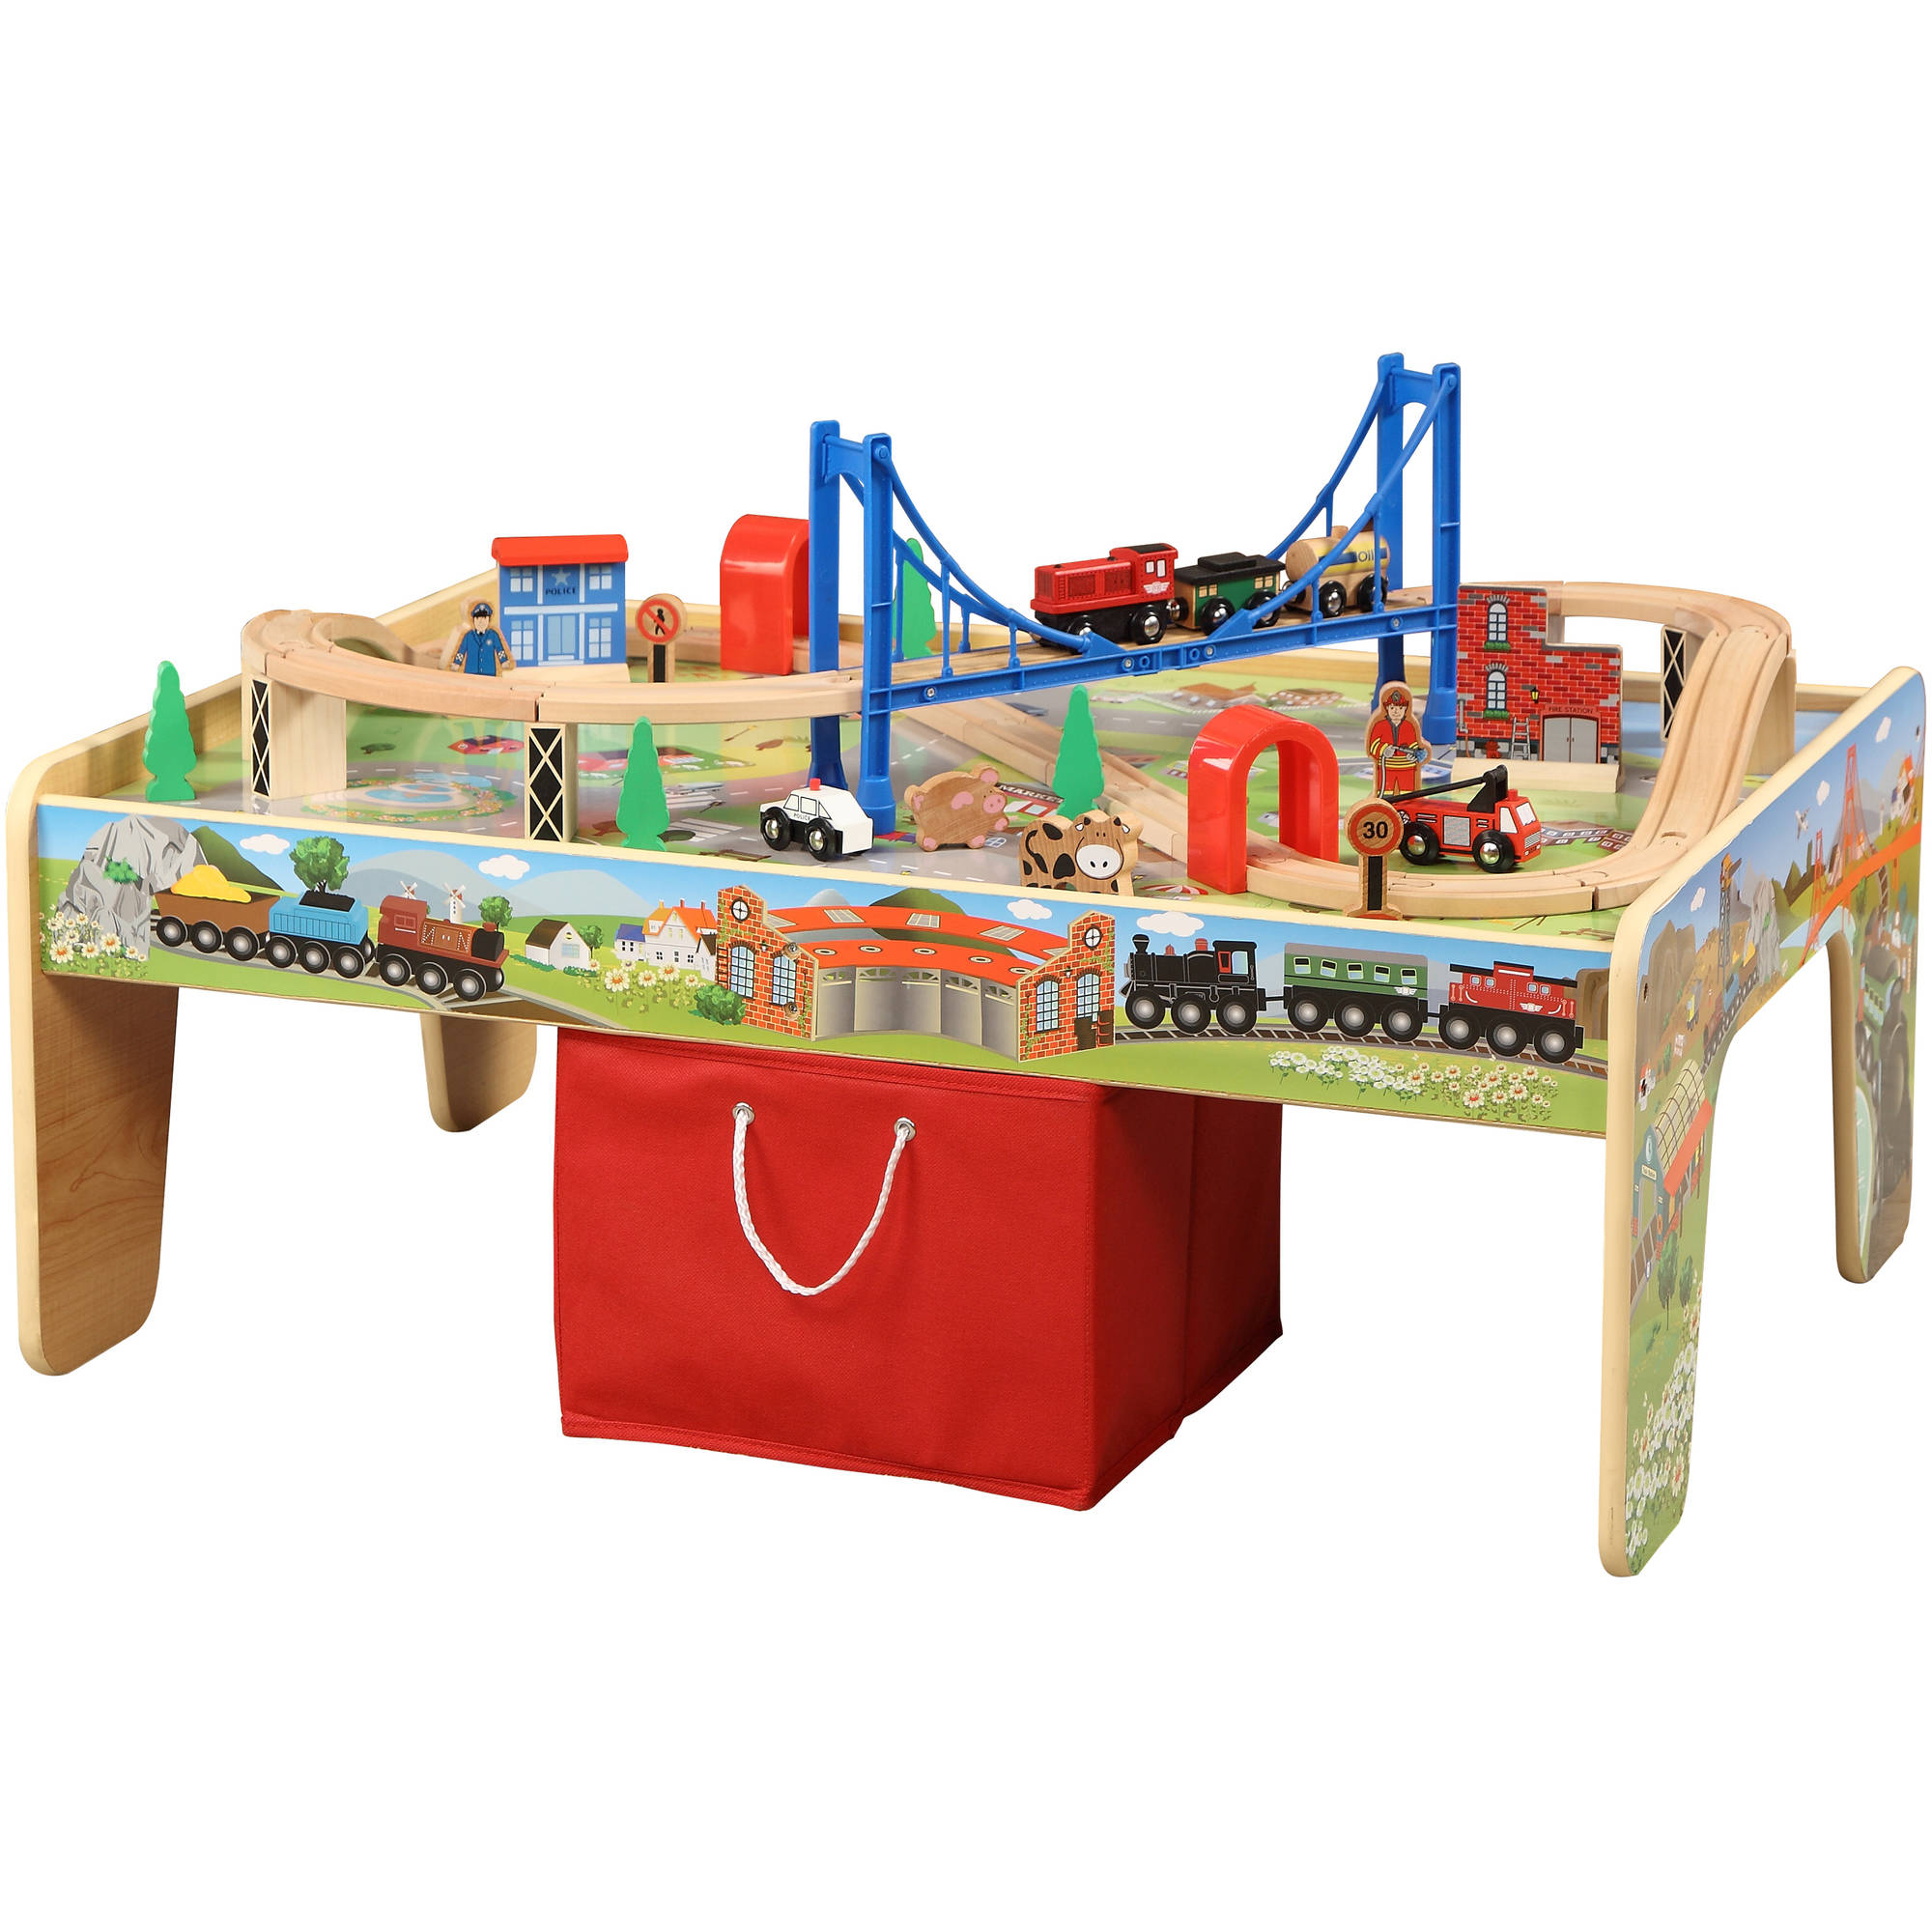 Stunning Kidkraft Wooden Waterfall Mountain Train Table And Set ...